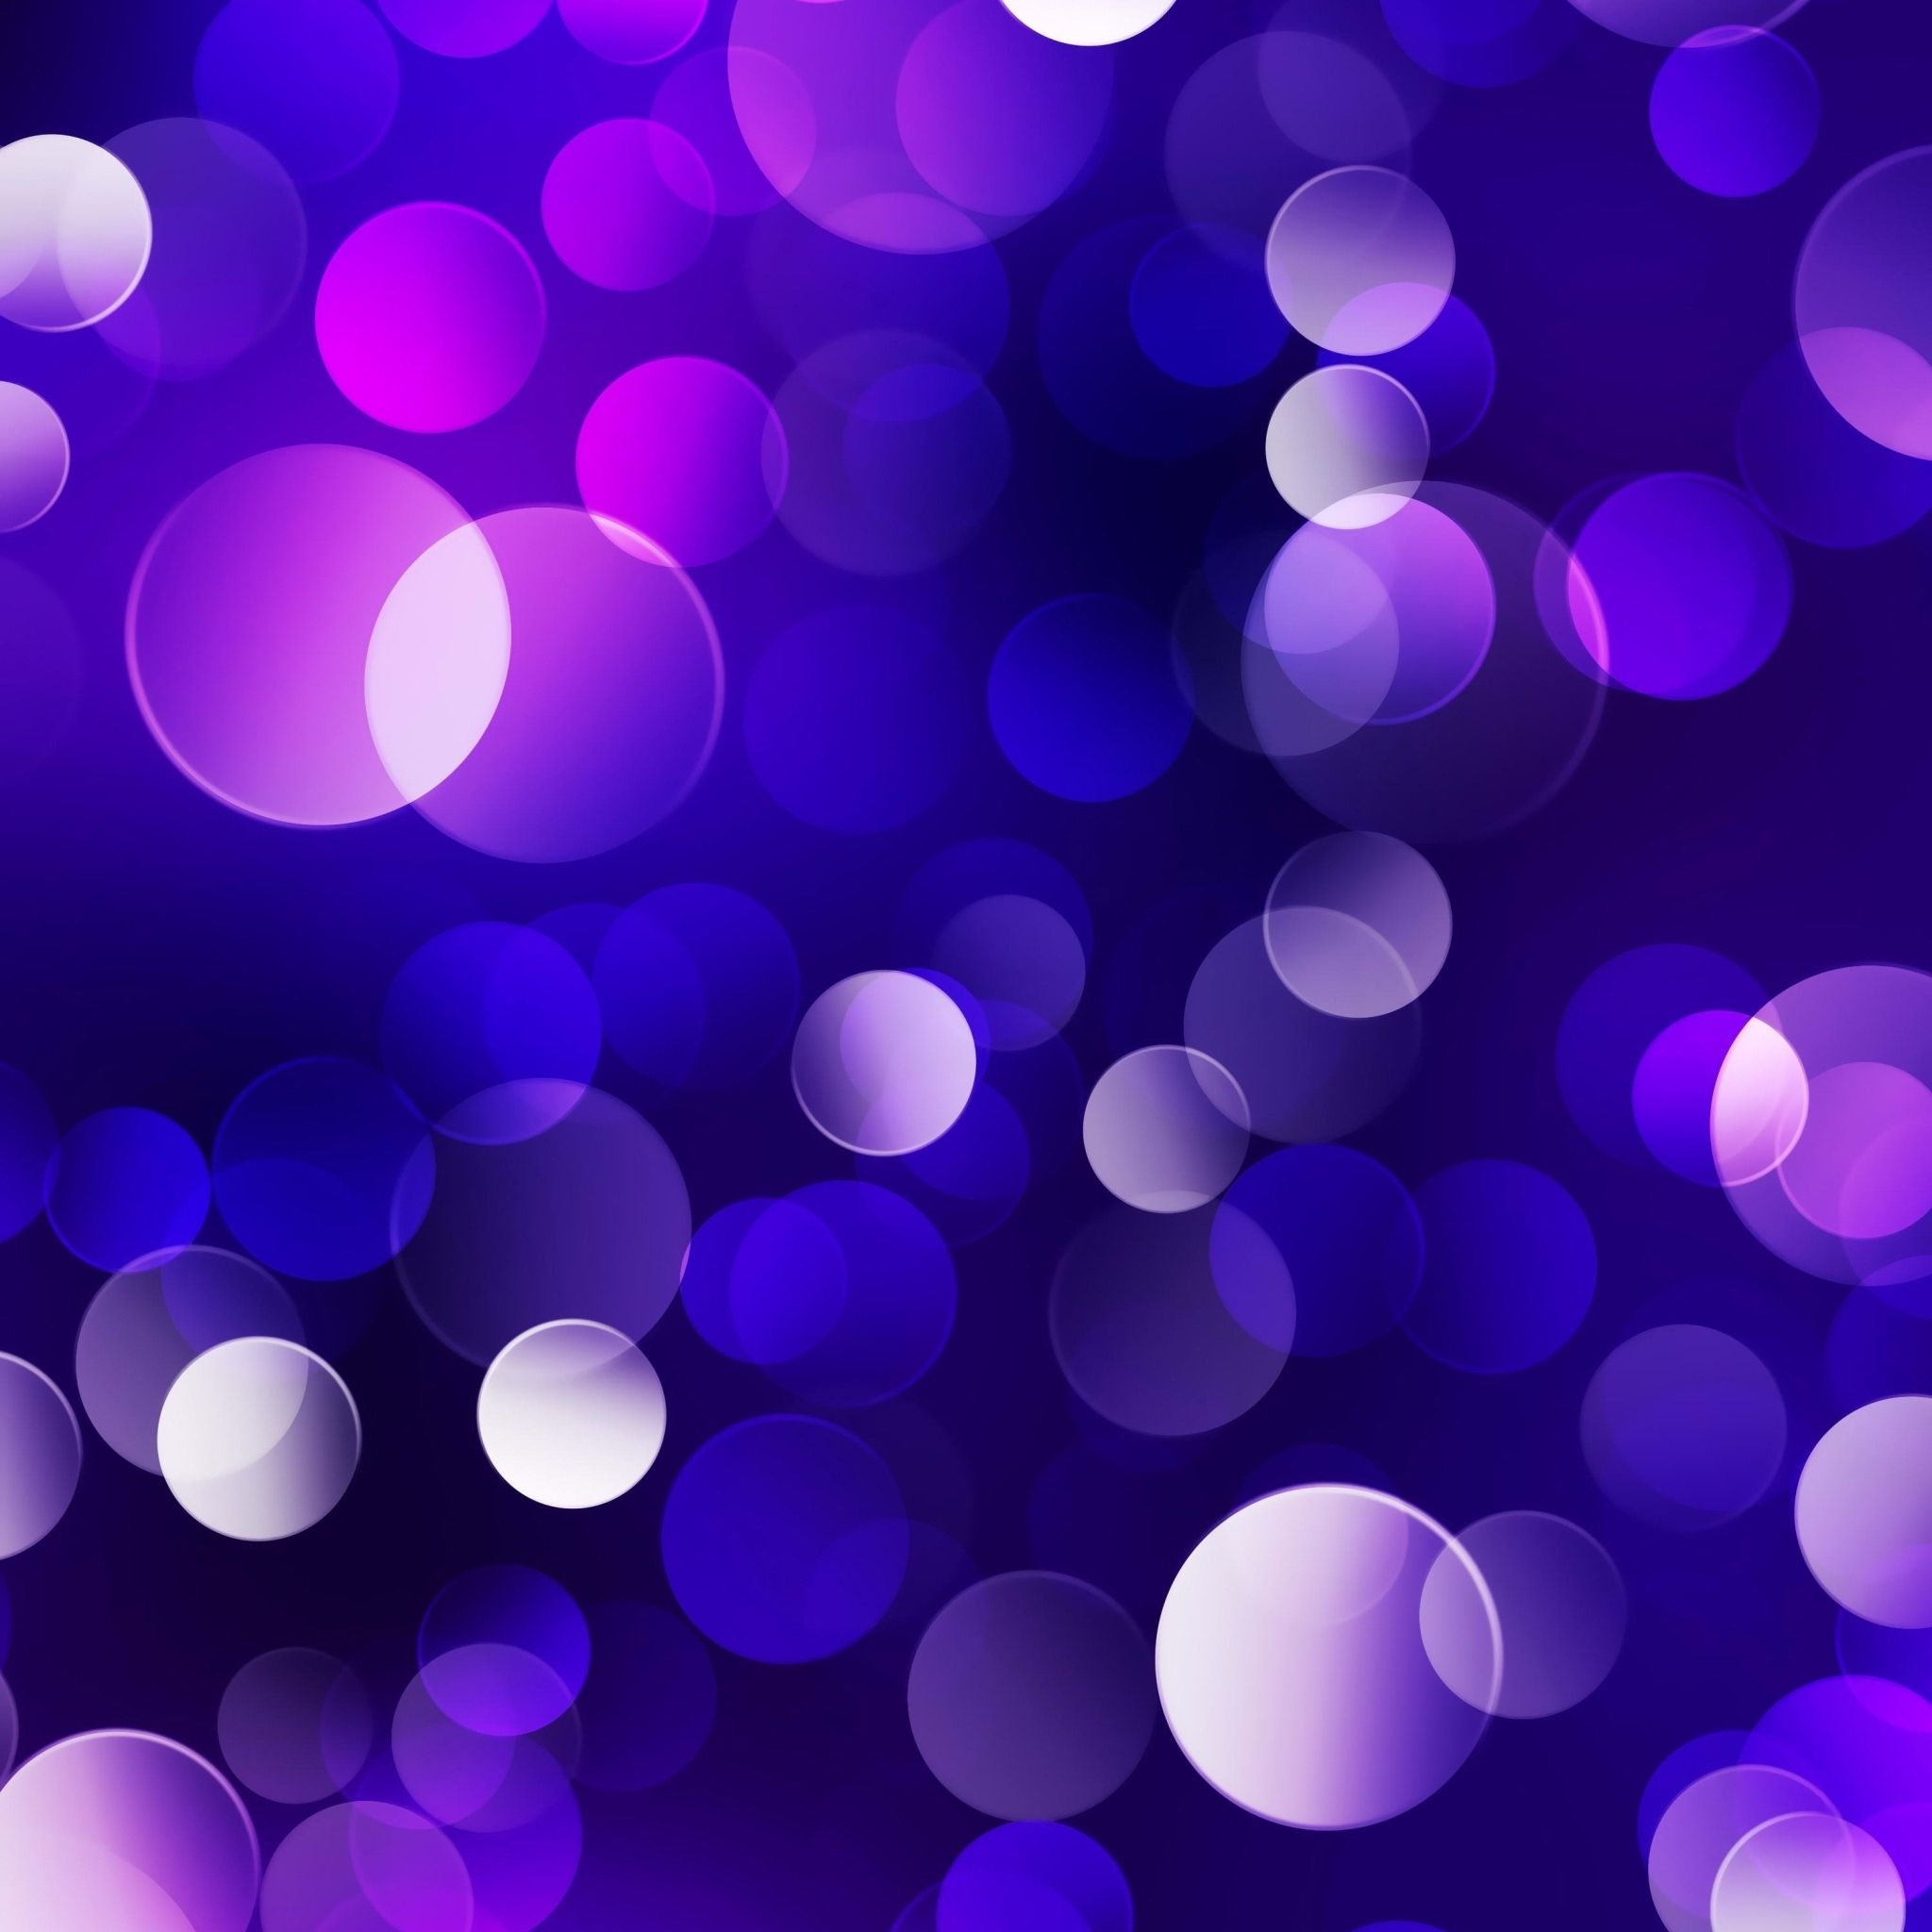 Light purple wallpaper pattern - Purple Abstract Background Hd Wallpaper Download In 2048x2048 1024x1024 Resolutions Find Similar And Same